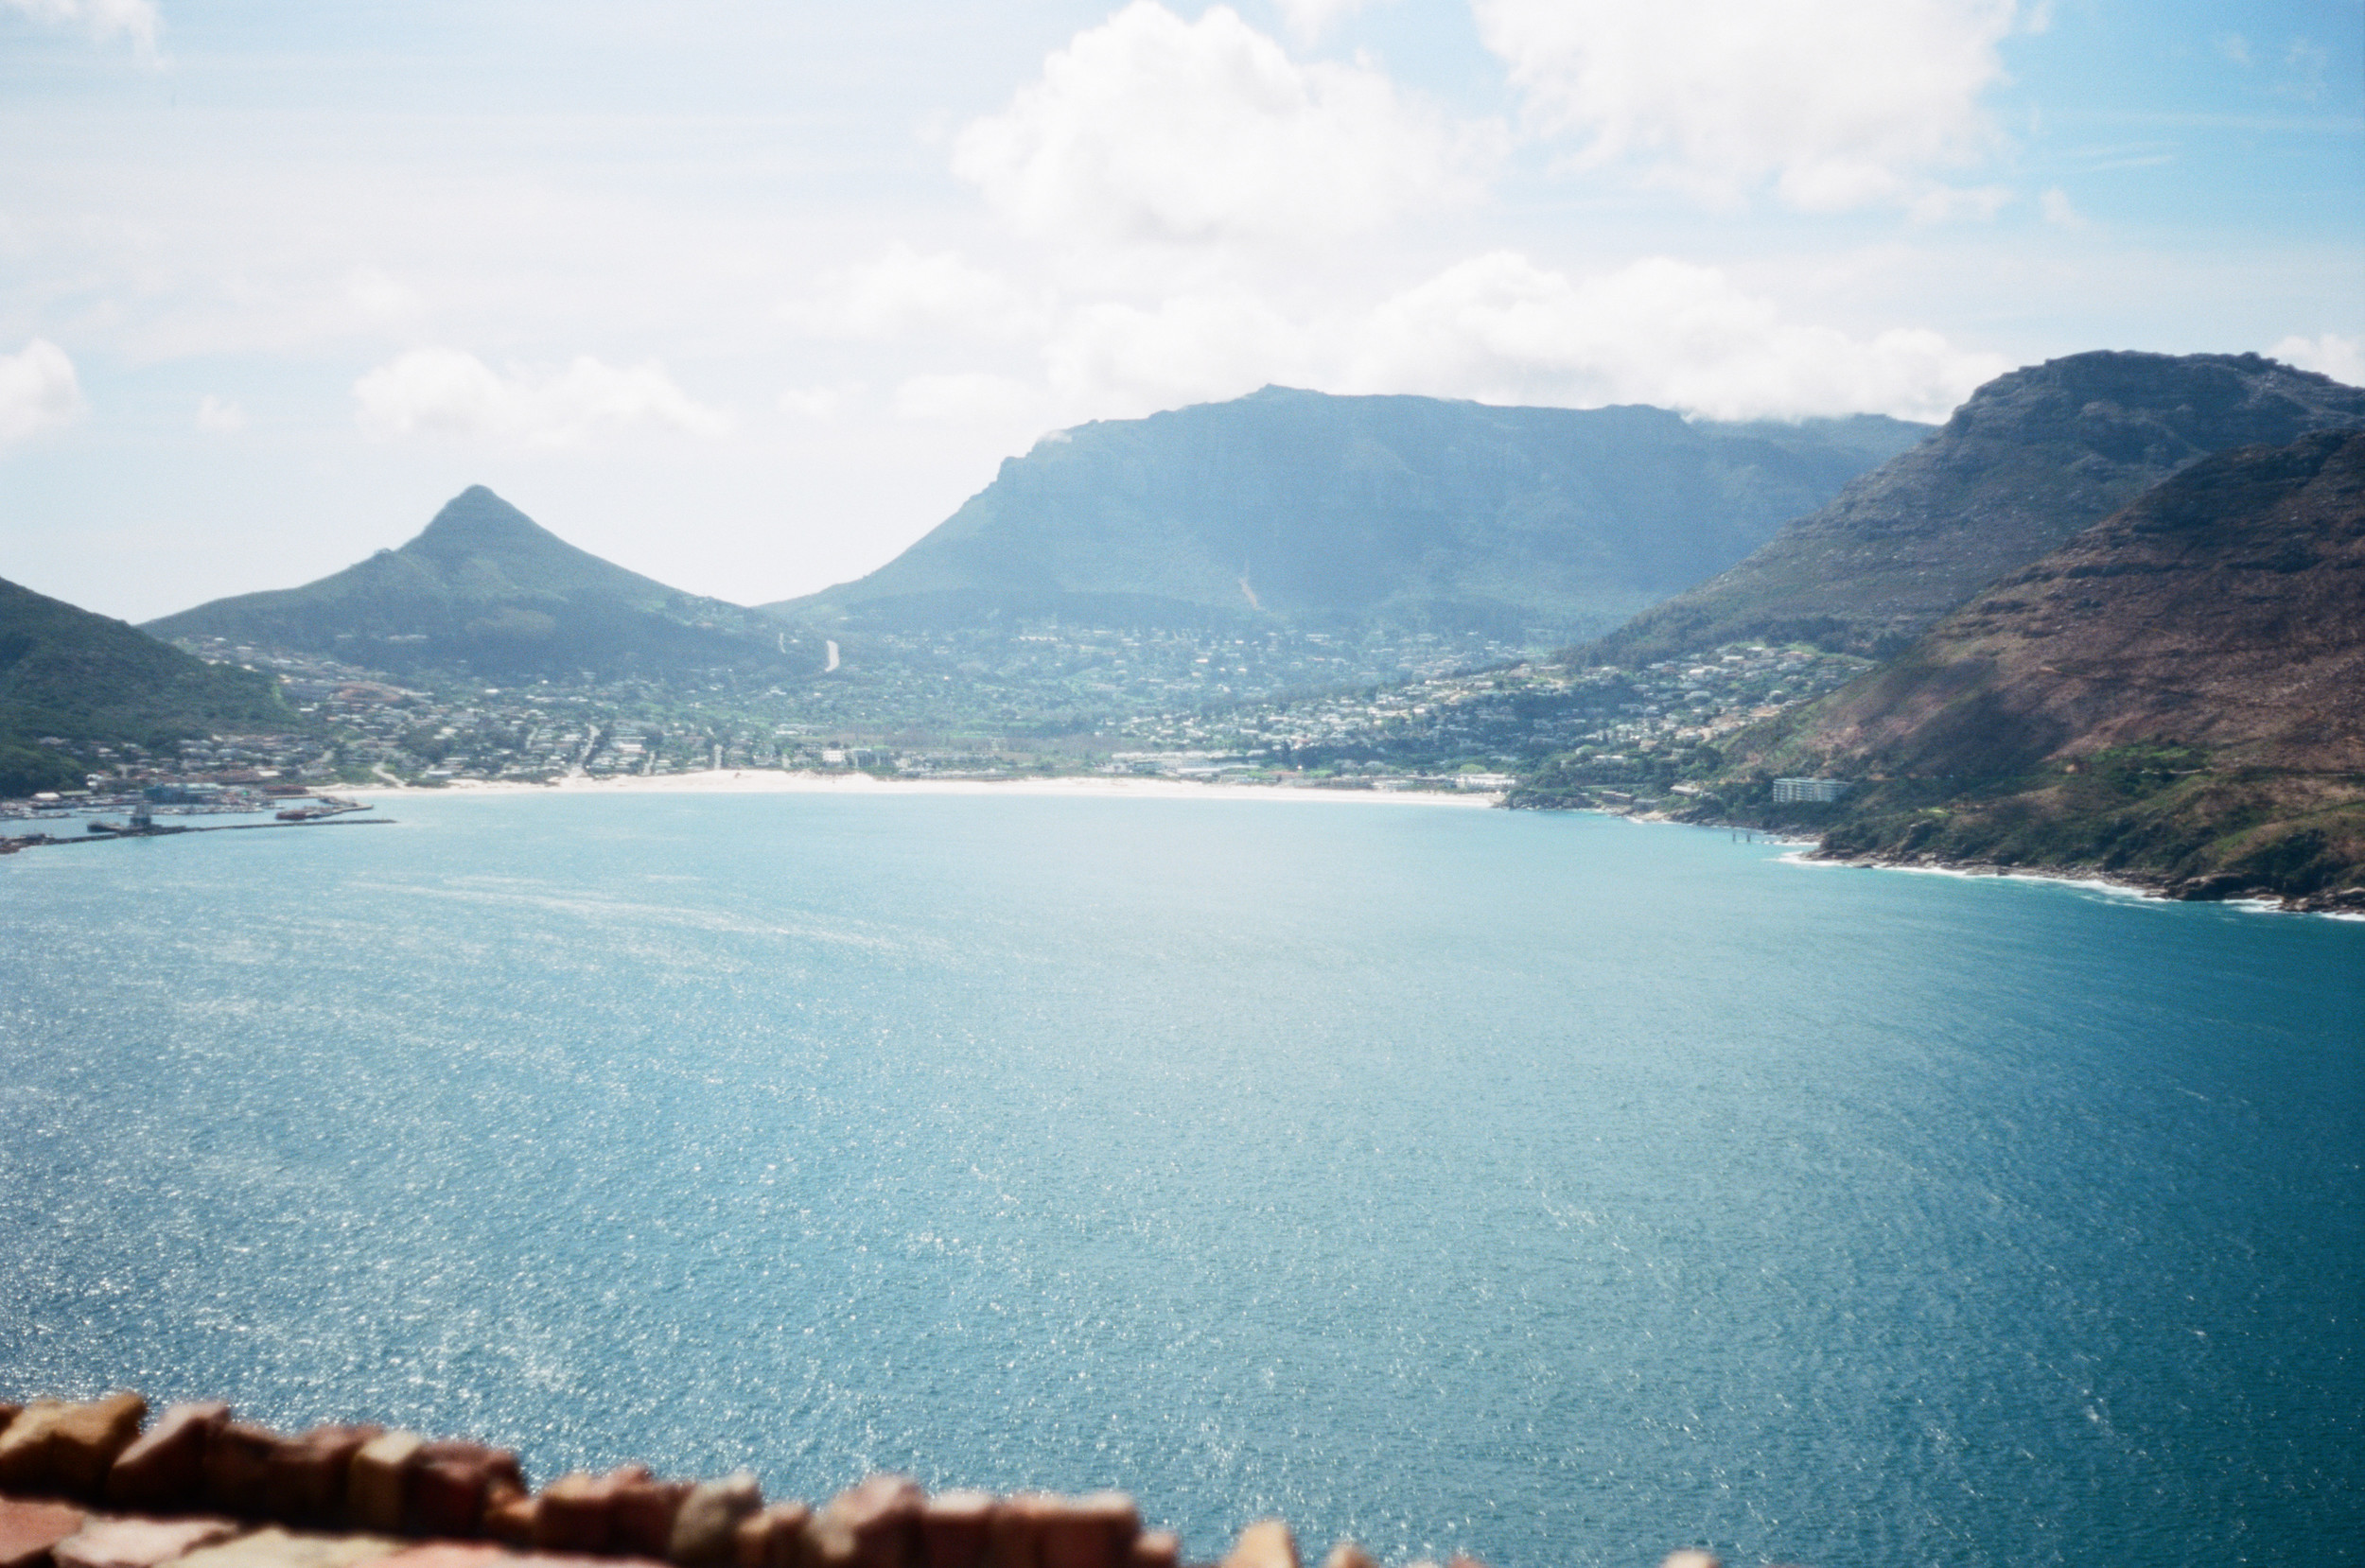 View From The Peak, Chapman's. South Africa